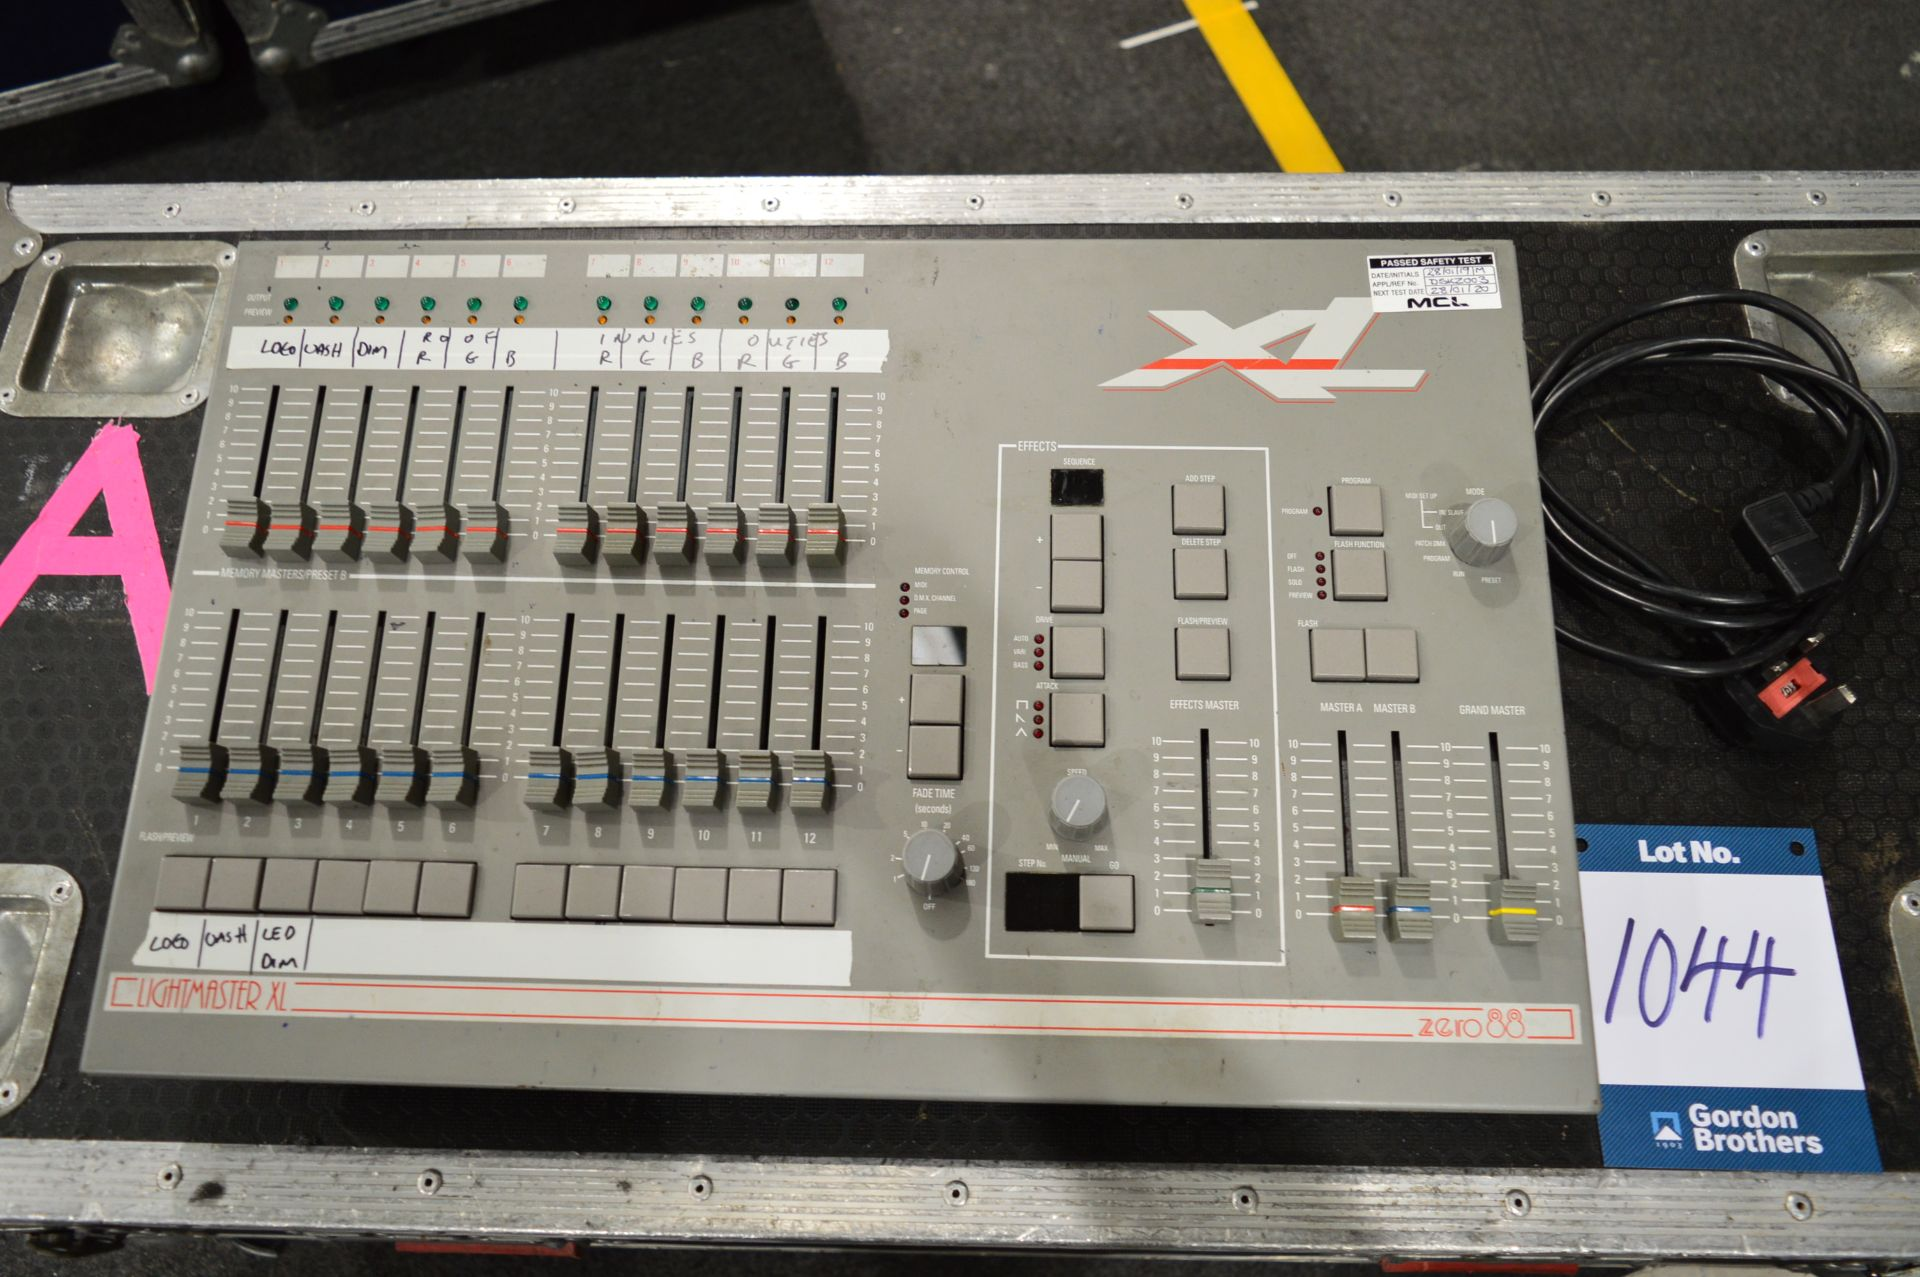 Lot 1044 - Zero88, Lightmaster XL lighting console controller